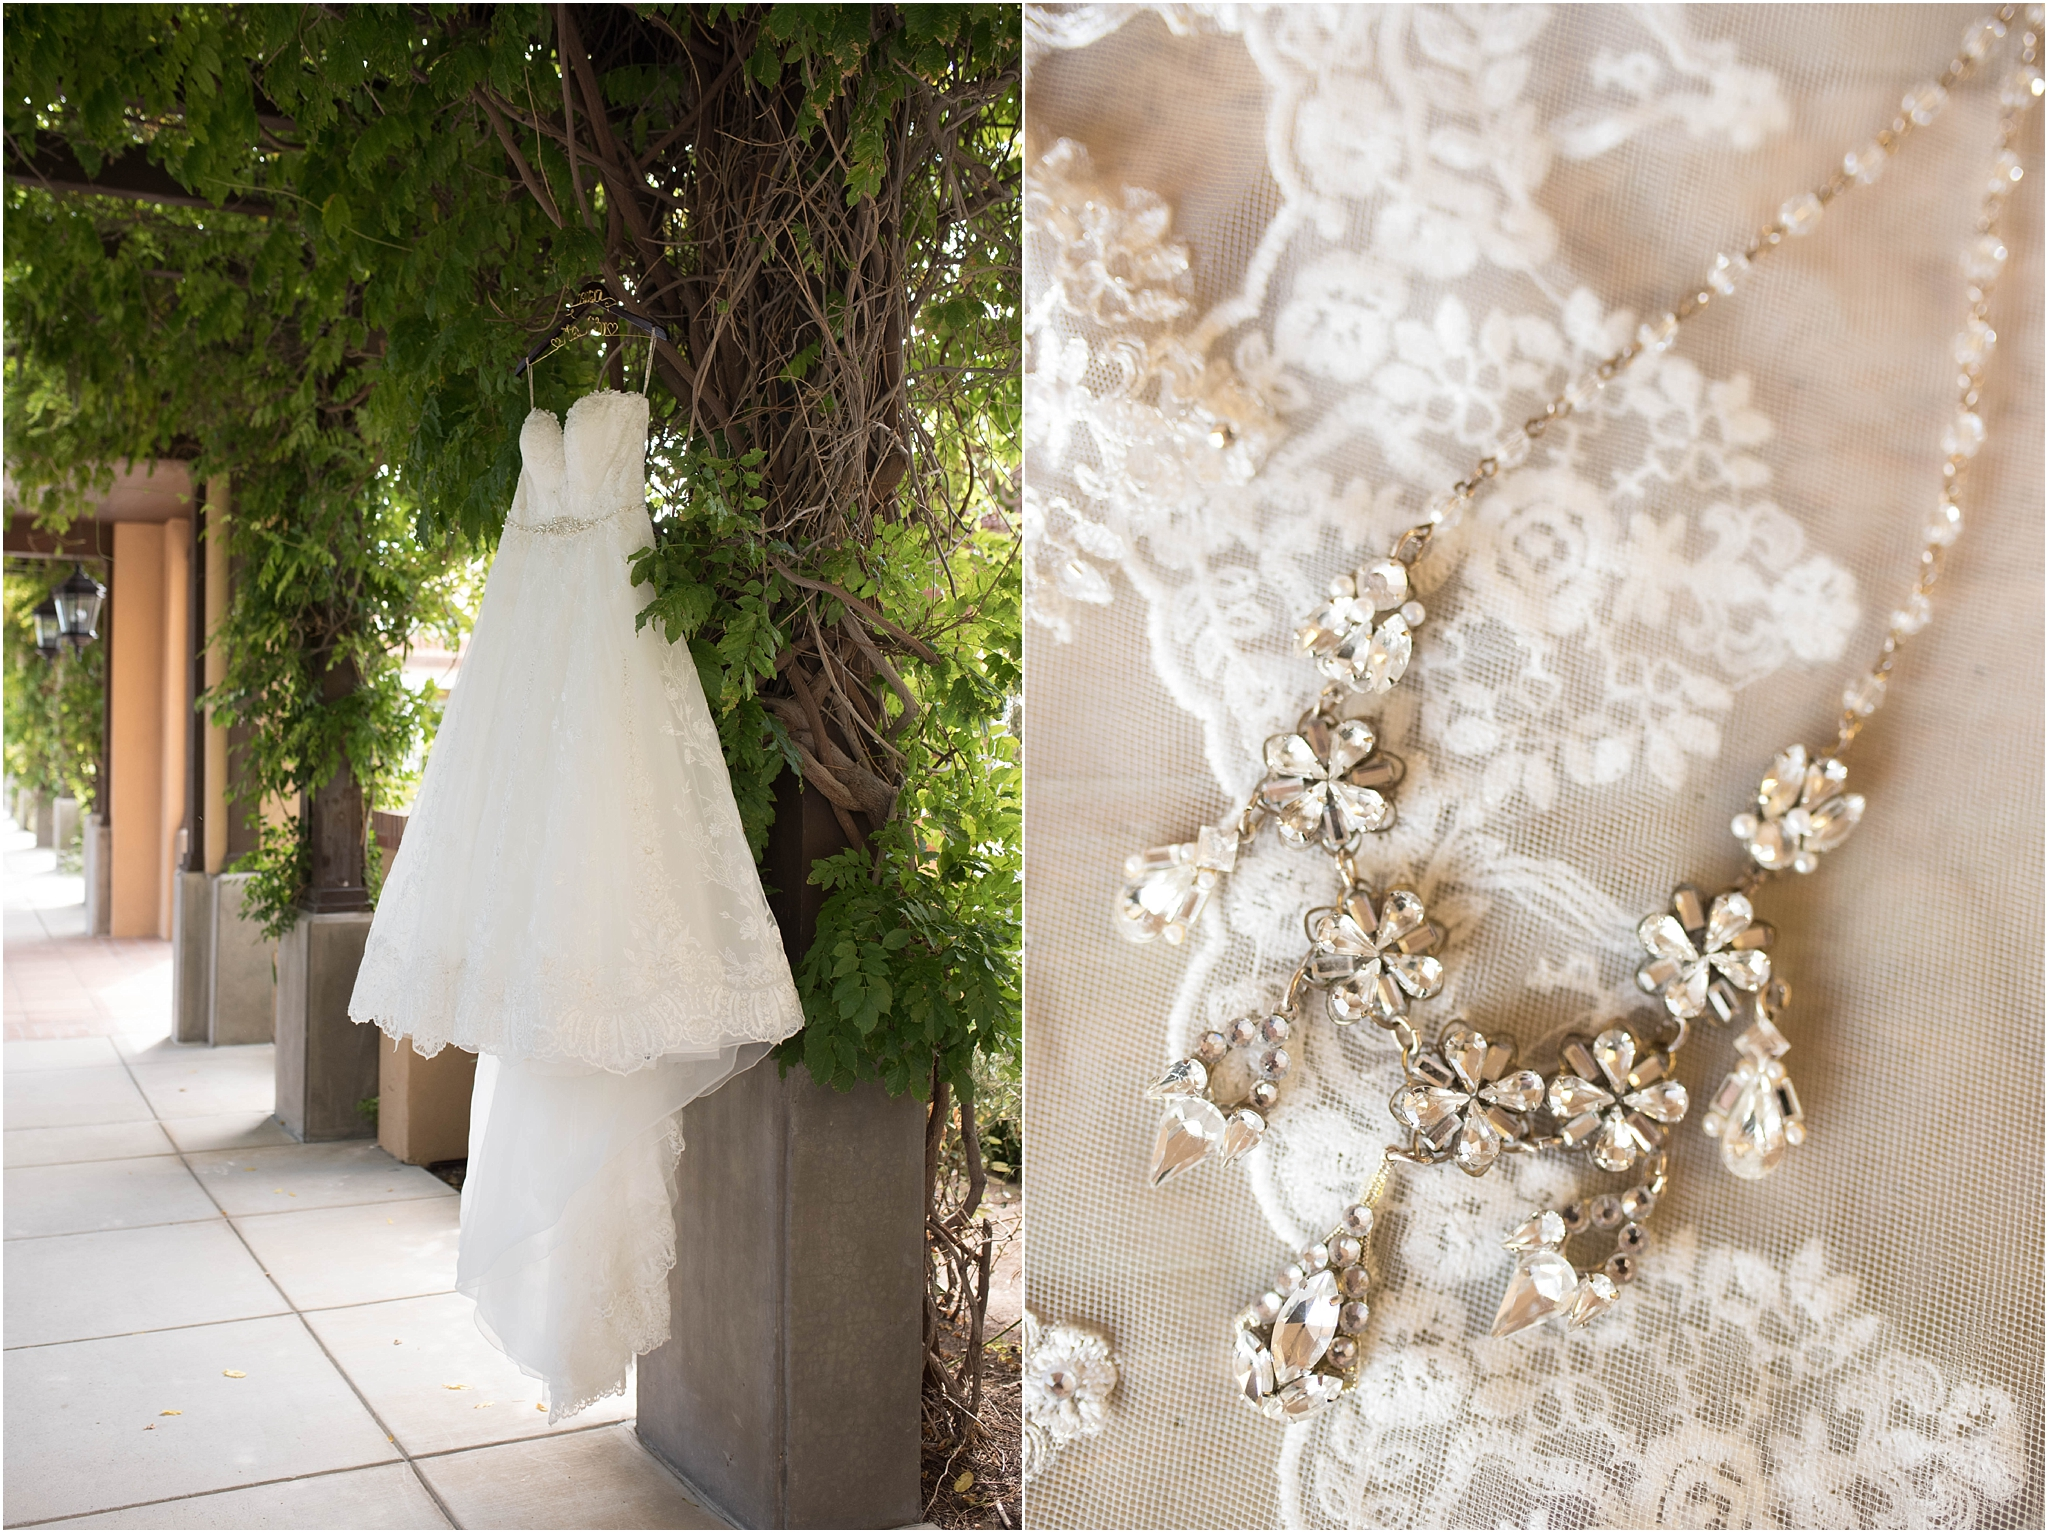 kayla kitts photography - new mexico wedding photographer - albuquerque botanic gardens - hotel albuquerque_0001.jpg